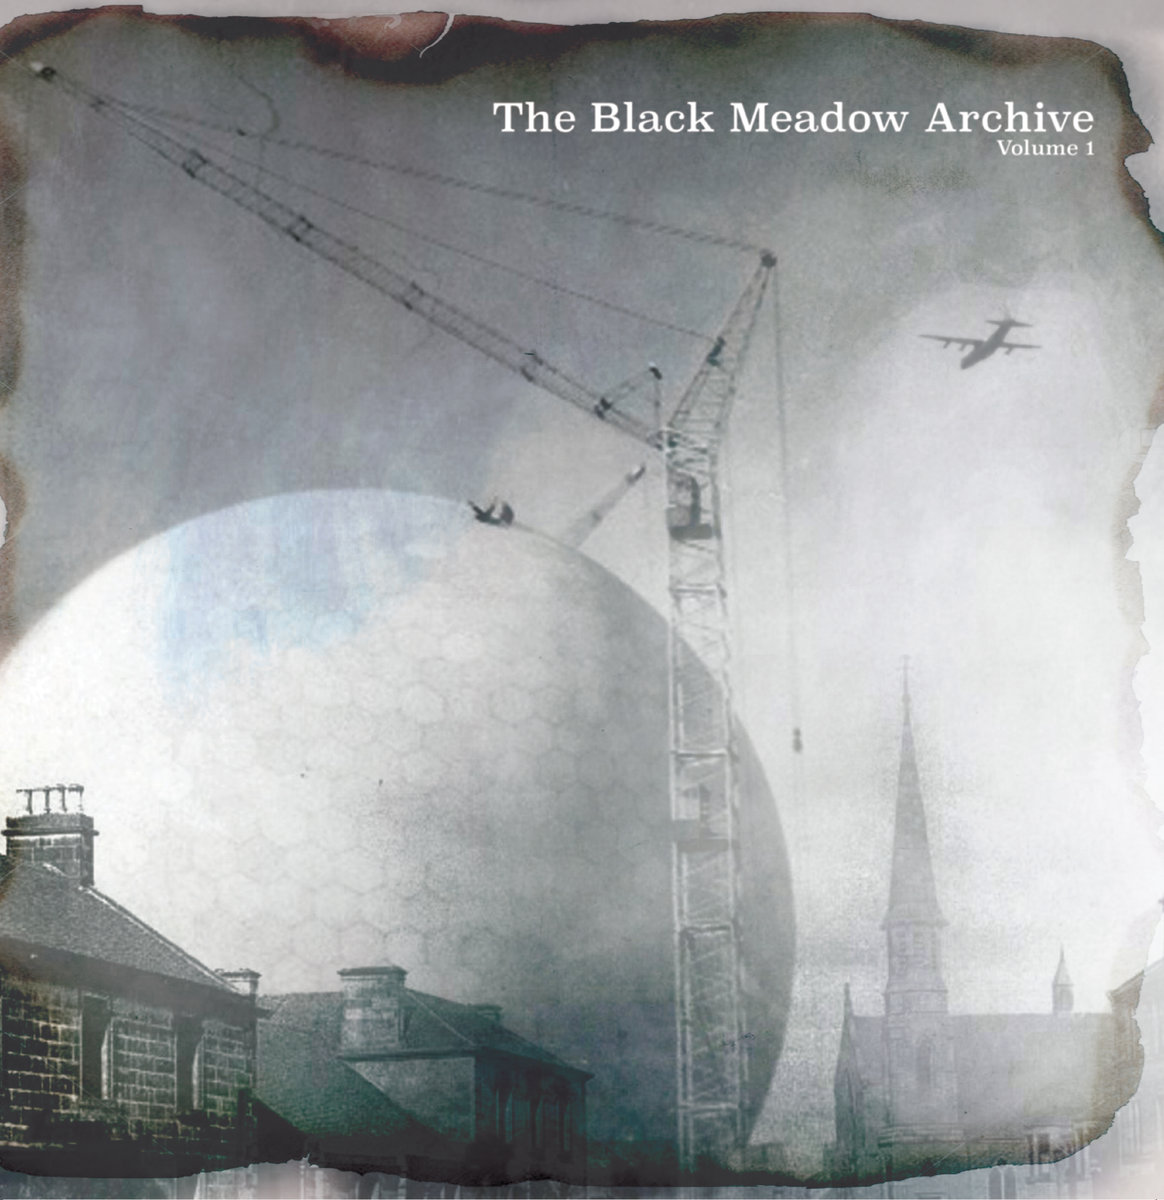 The Black Meadow